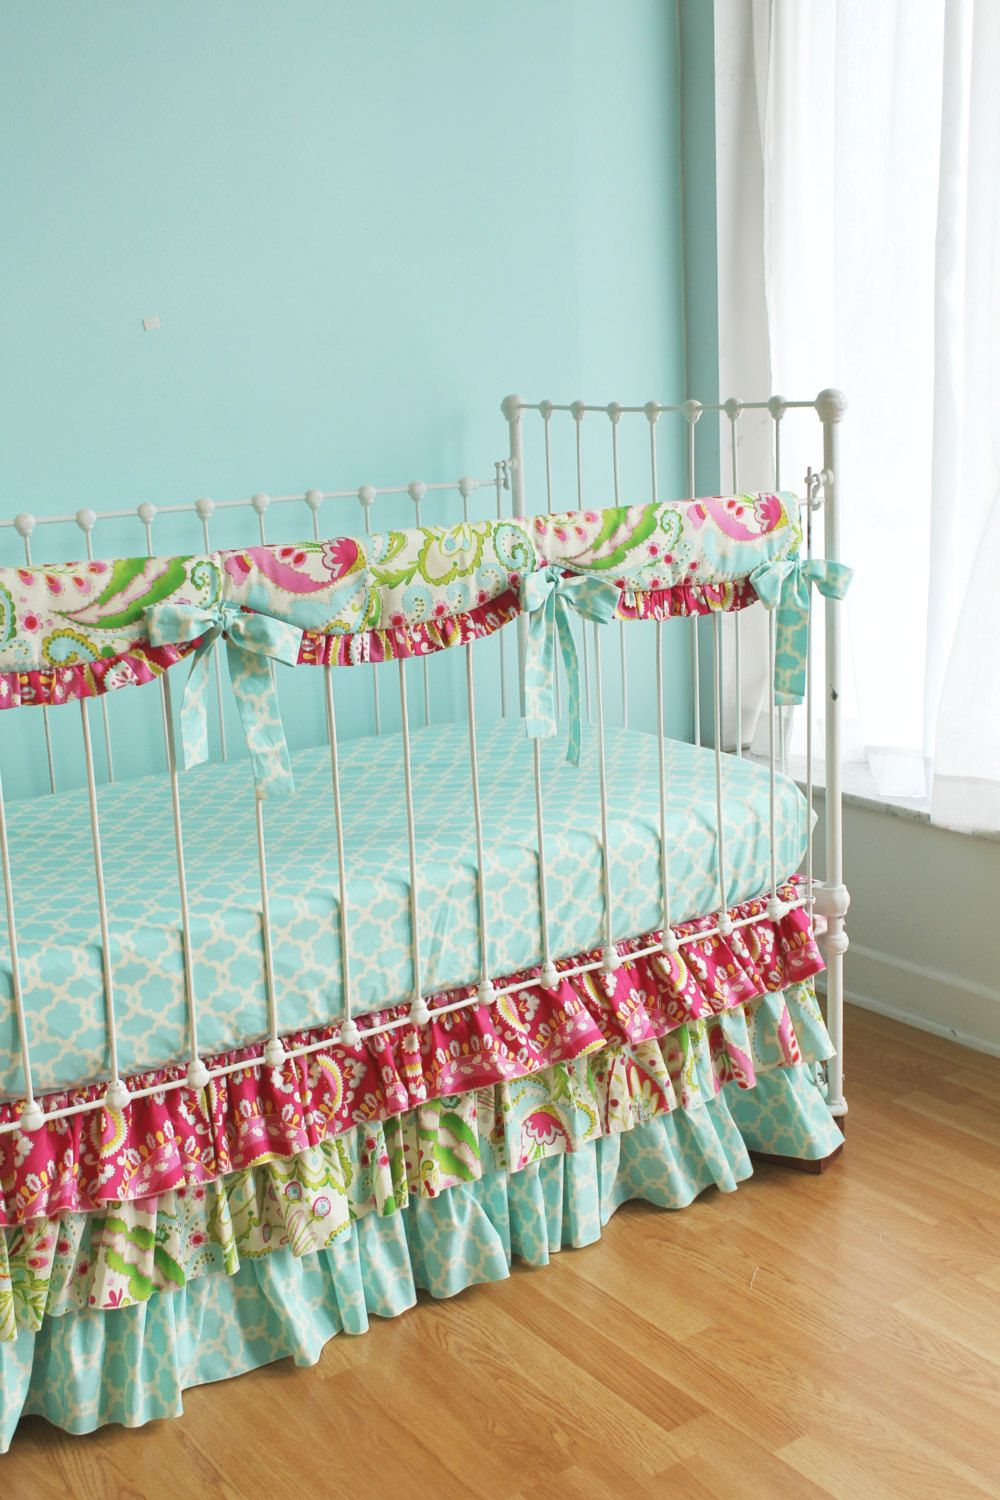 aqua vintage size cute way of disney your crib dresser white navy cot coral and turquoise nursery a blue sets easy options bedding the grey dark cribs floral convertible amazing for blush baby pink girl setscrib full wallpaper wood set little